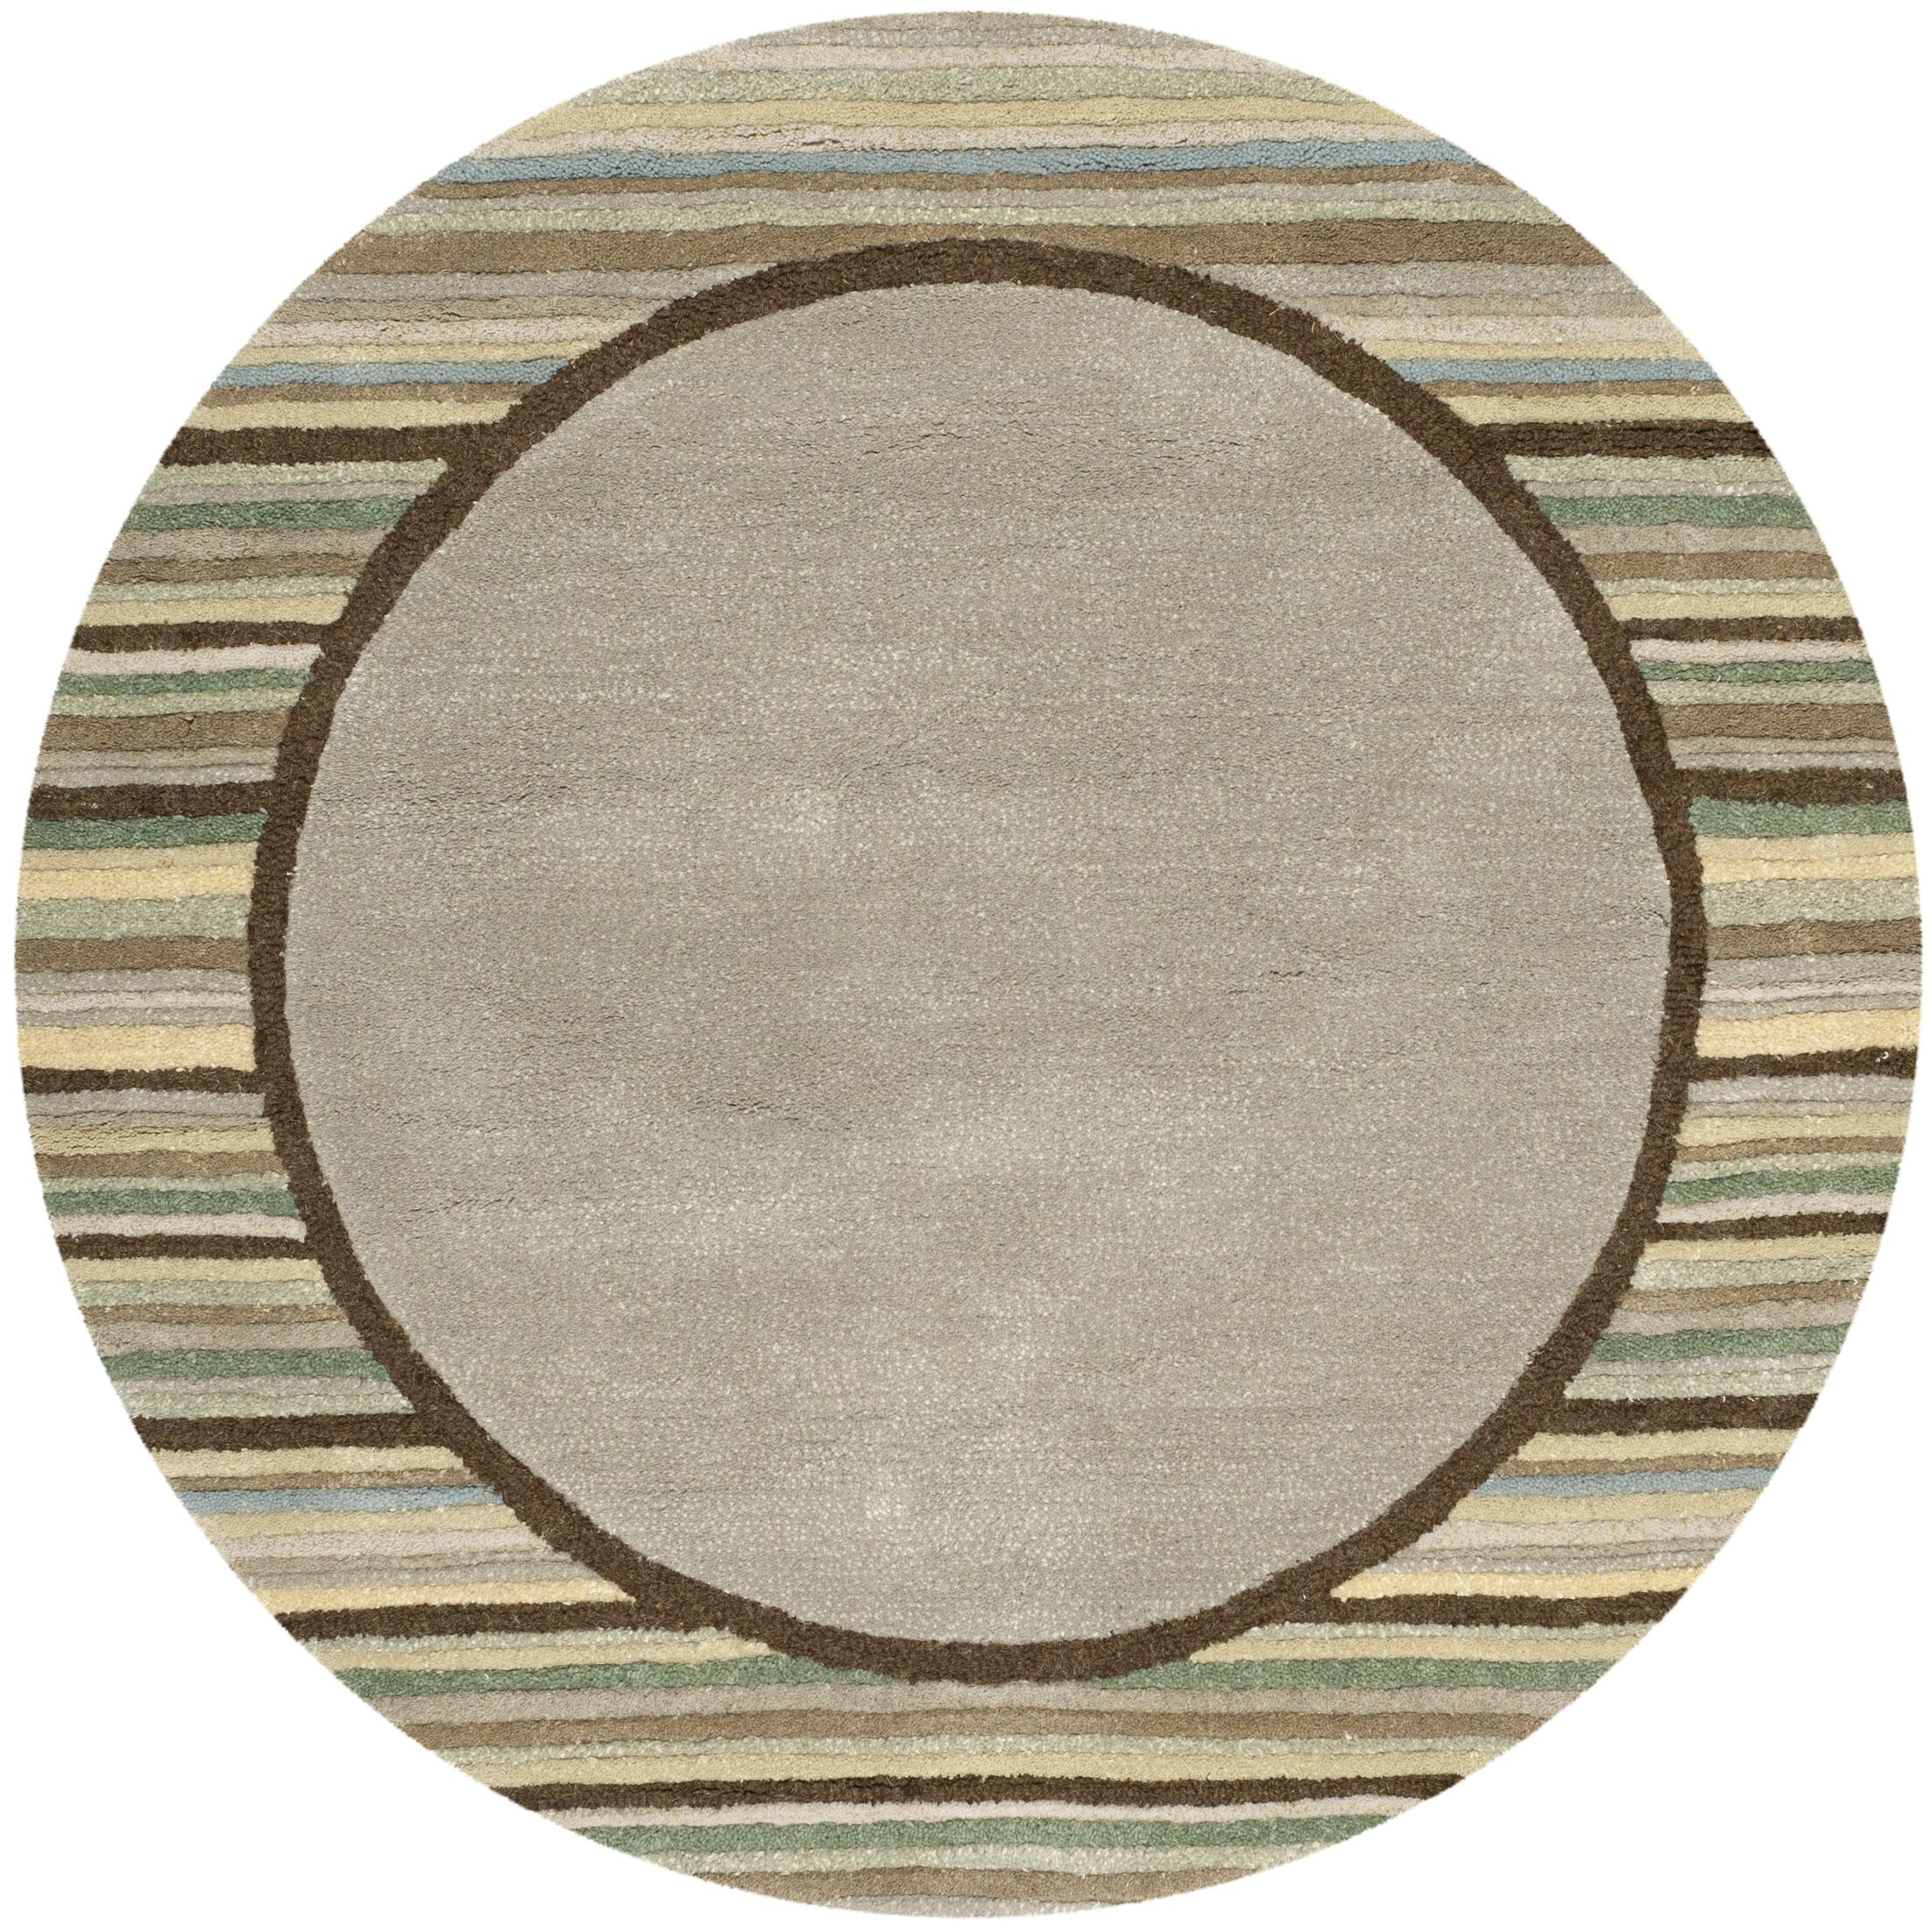 Hand-Woven Tadpole Green Area Rug Rug Size: Round 8' x 8'